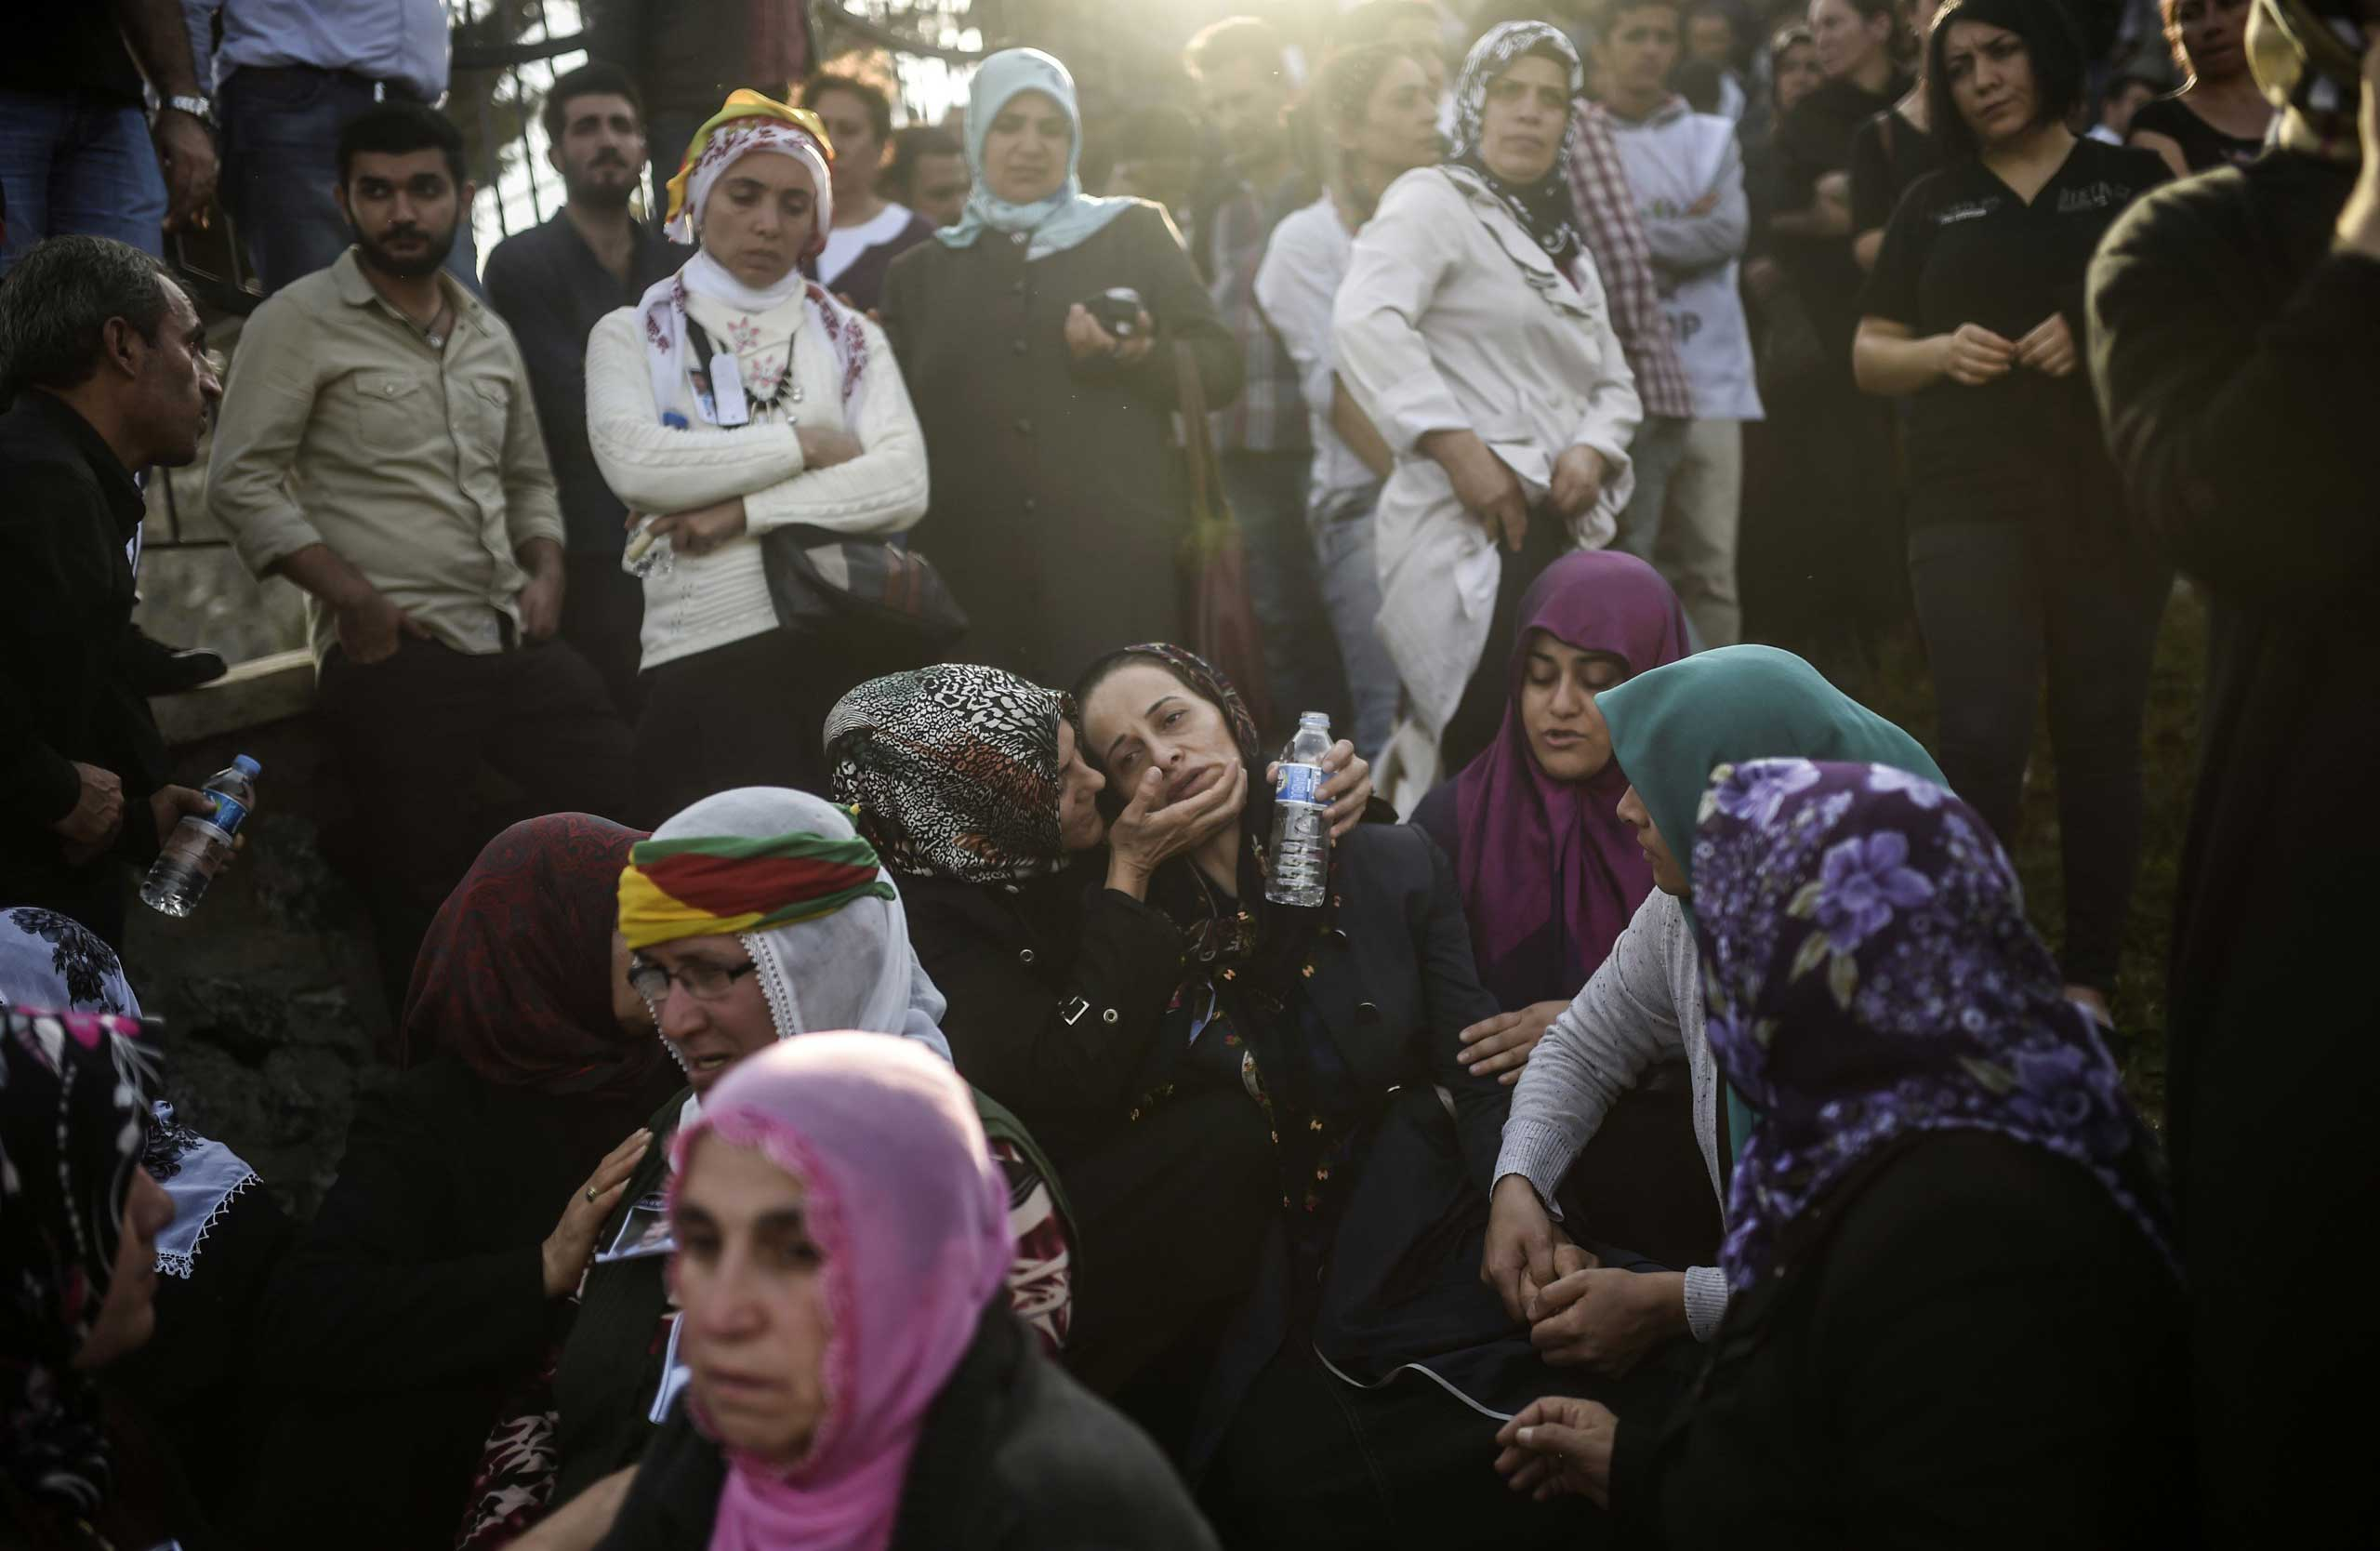 Relatives mourn near the grave of a victim of the twin bombings in Ankara, during the funeral in Istanbul on Oct. 12, 2015.